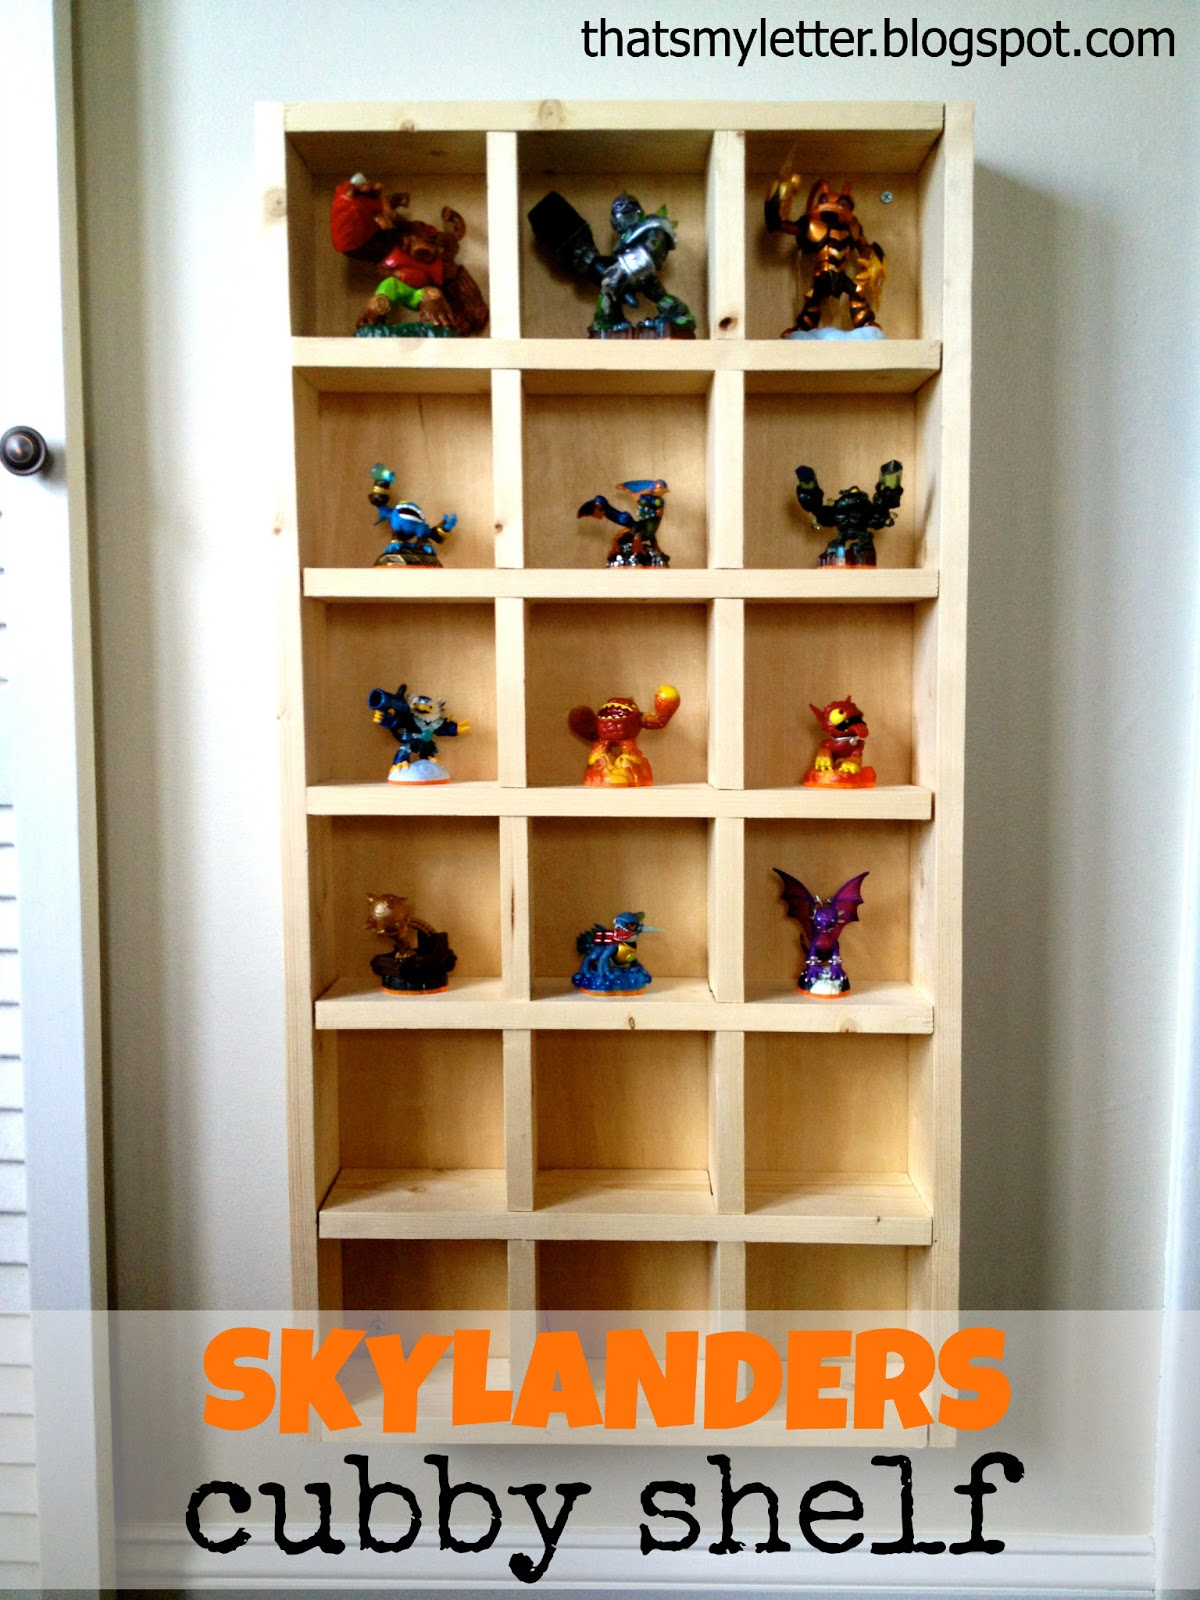 Build The Perfect Cubby Storage Shelf For Skylanders (or Any Play  Figurines) Using Modified Cubby Shelf Plans From Ana White.